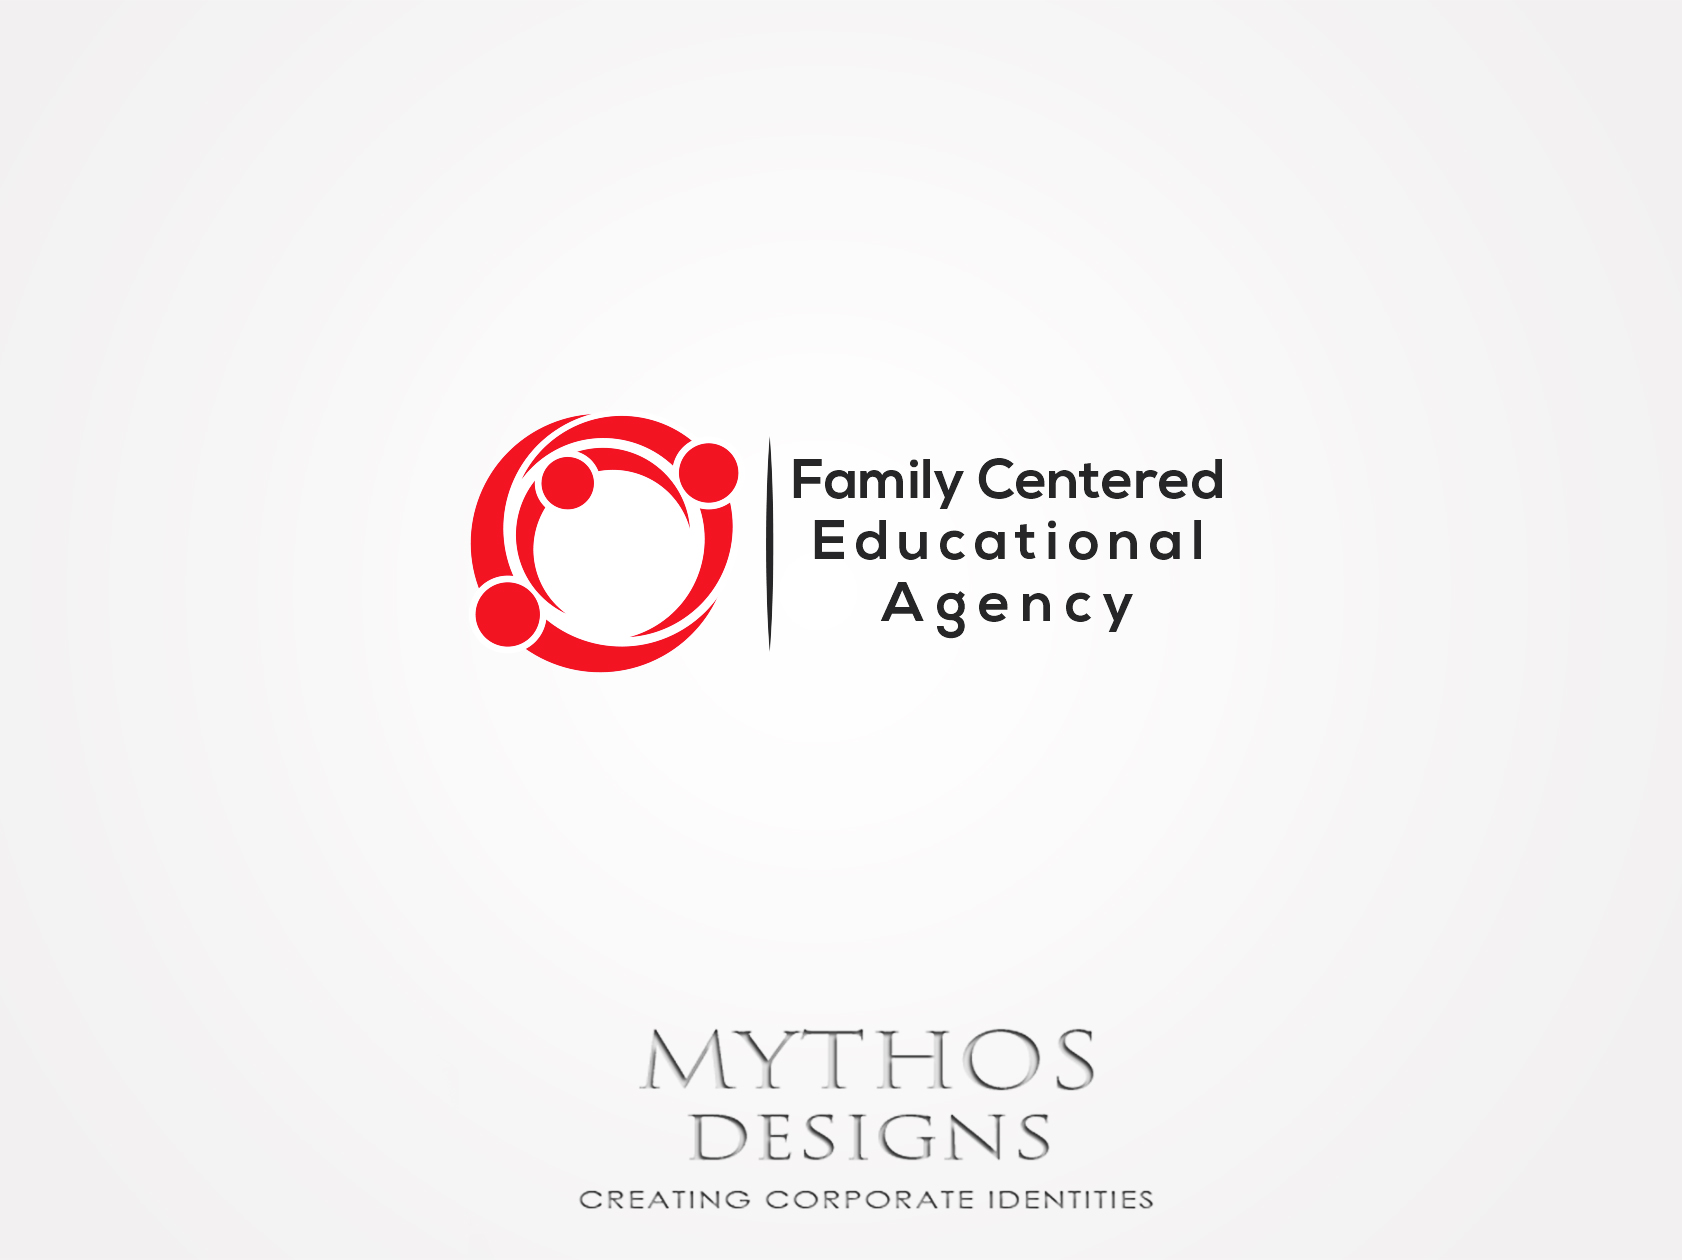 Logo Design by Mythos Designs - Entry No. 60 in the Logo Design Contest Captivating Logo Design for Family Centered Educational Agency.